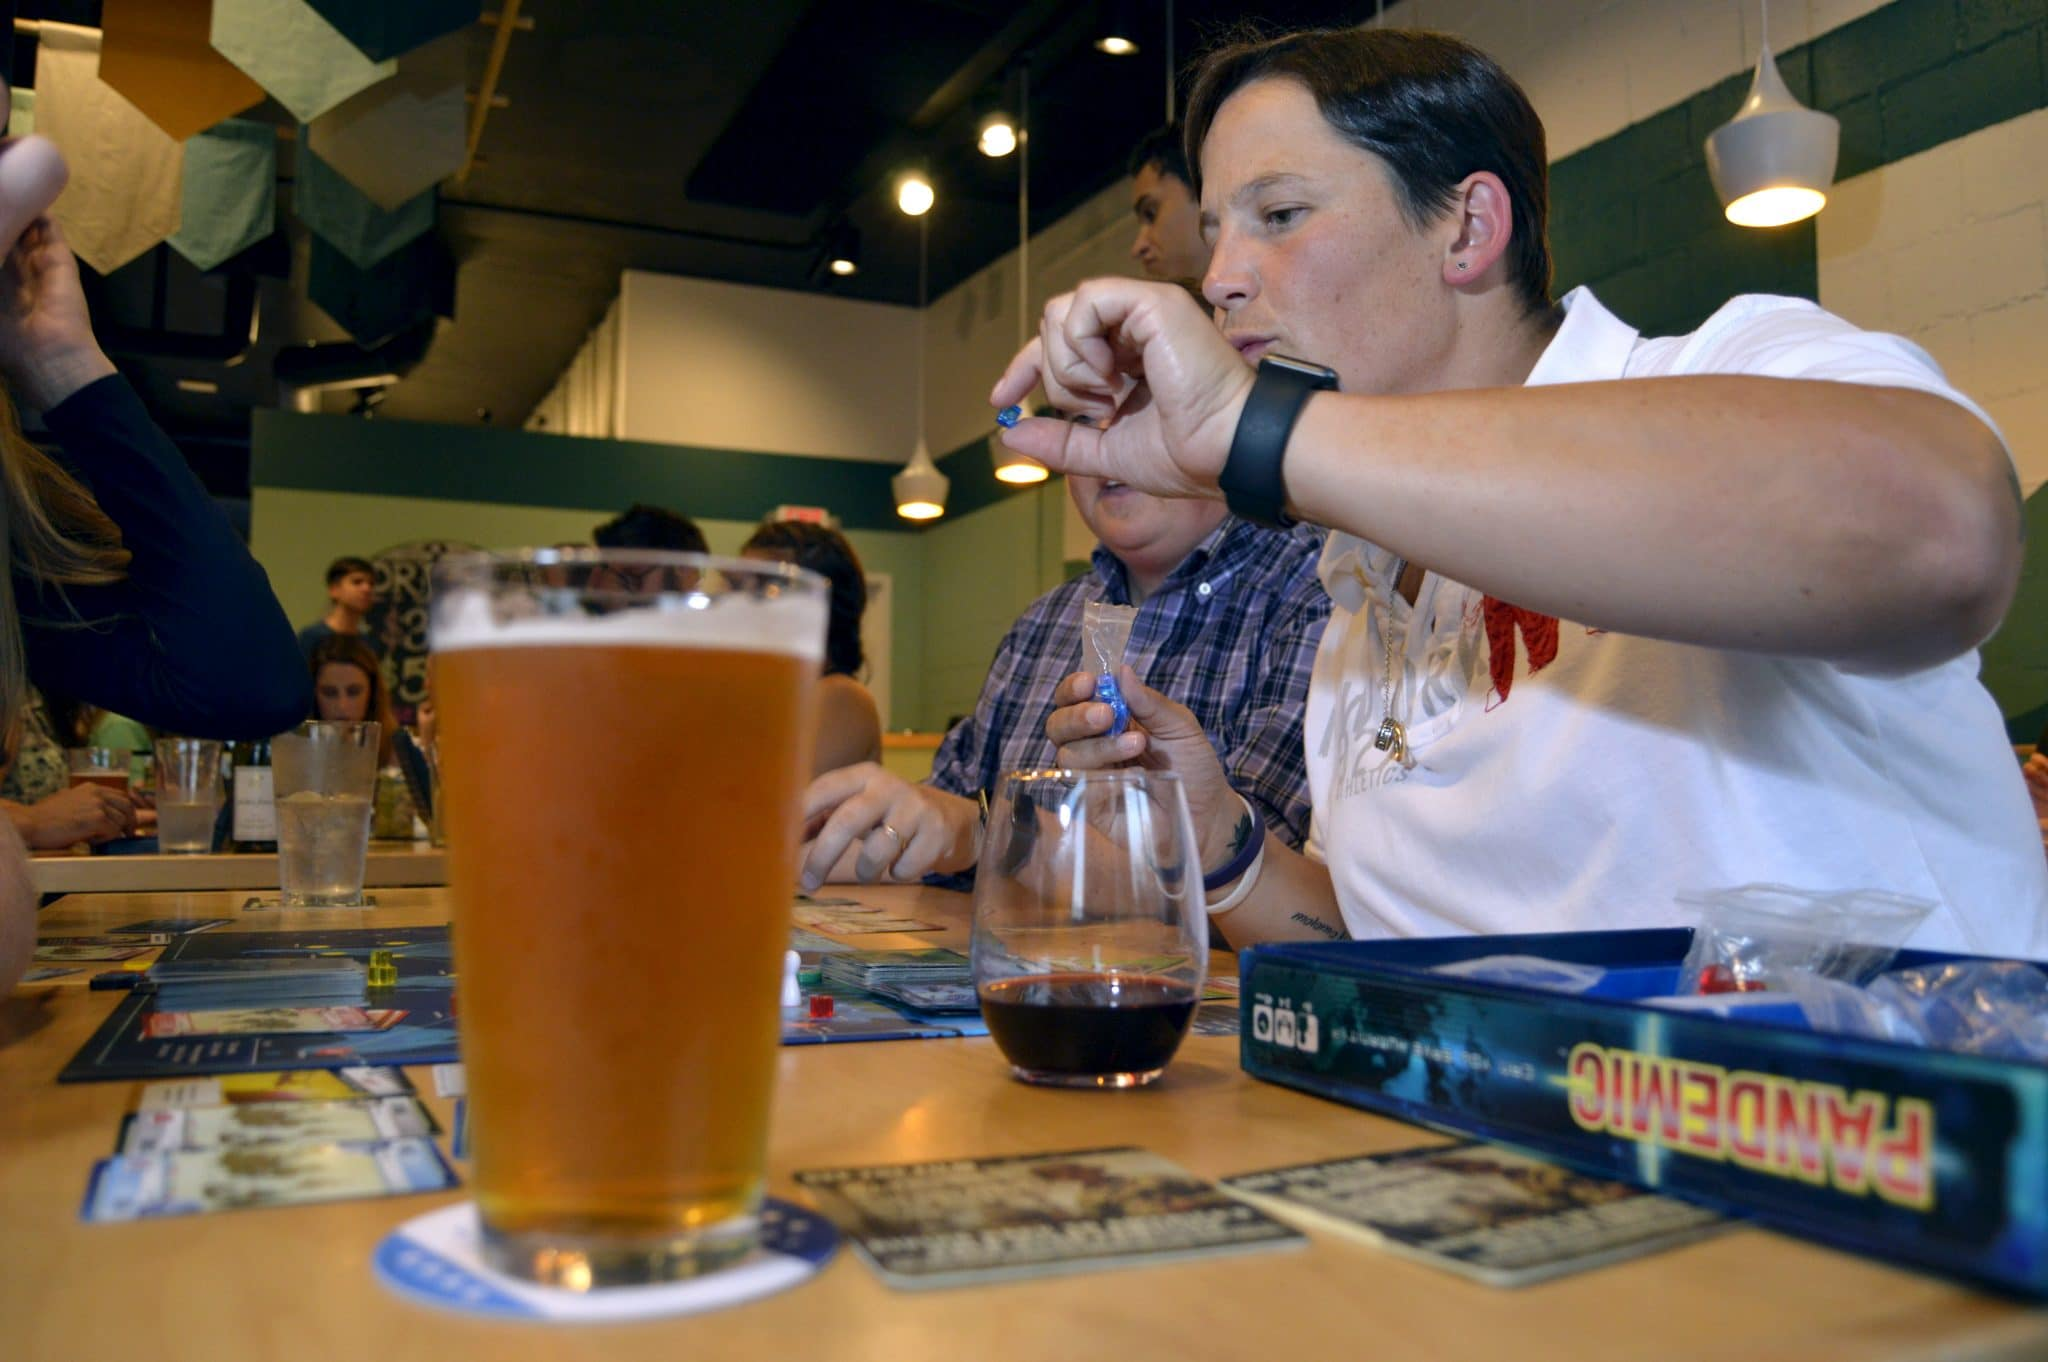 Customers enjoy a wide assortment of craft beers and wine while they play games and have fun